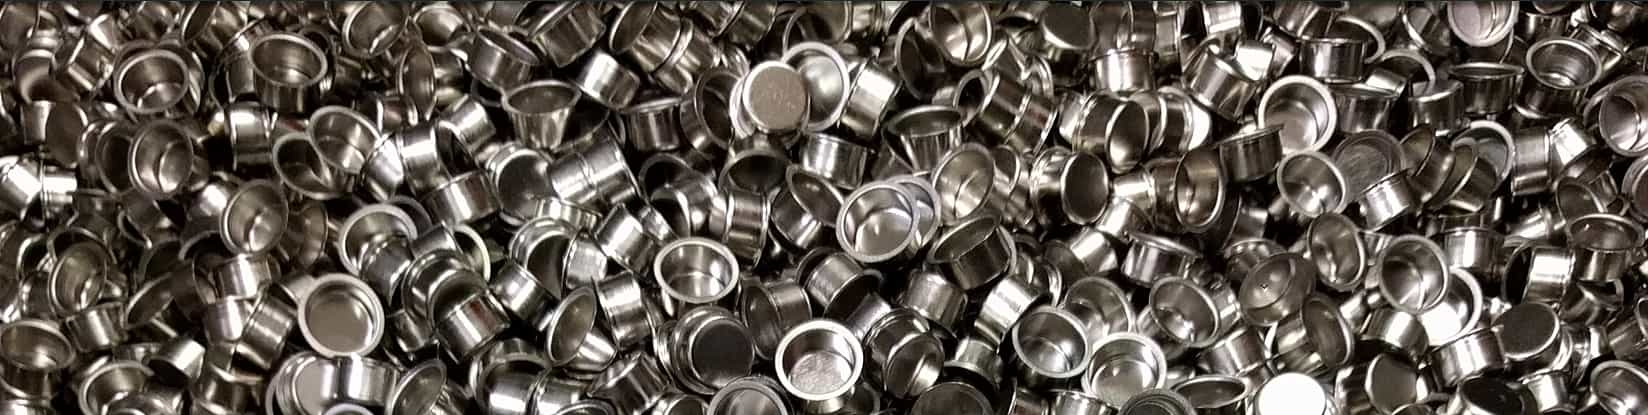 Electroless Nickel Plating - Specializing in Electroless Nickel Plating